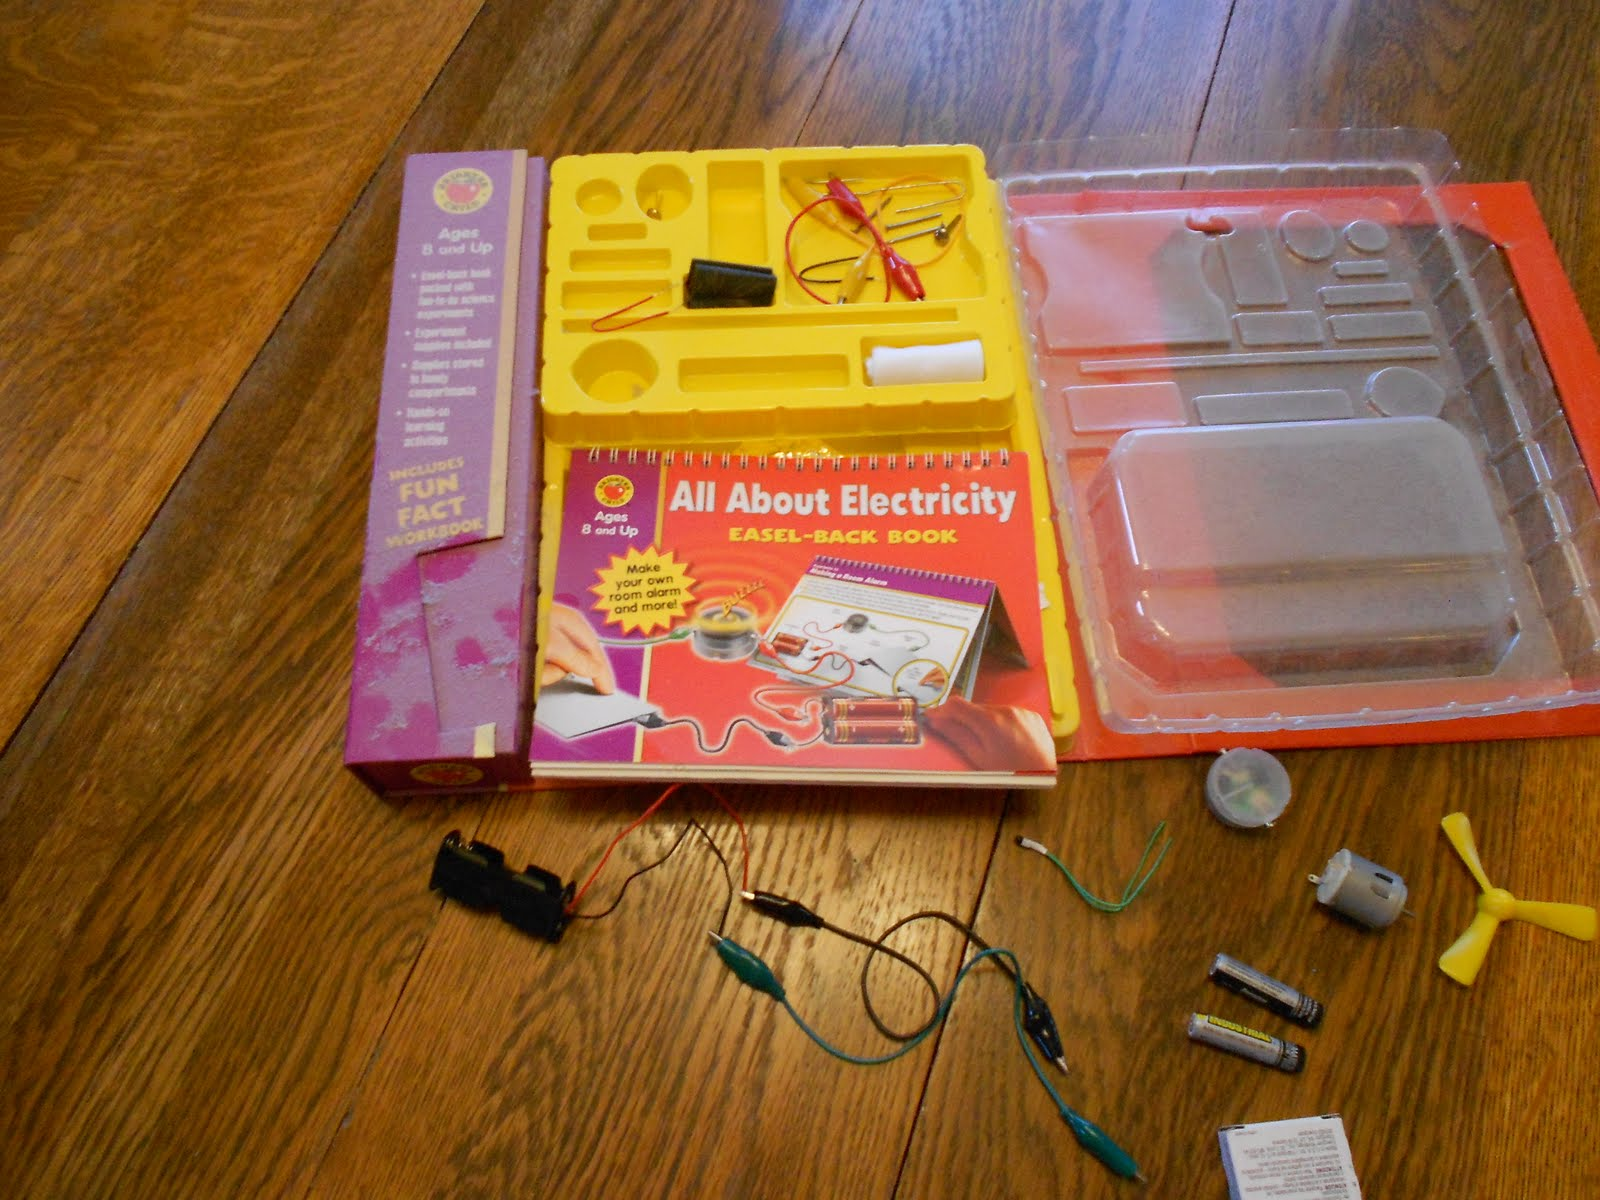 Light Up Your Decorations With Electric Play Dough likewise Enviro Battery further Obtain A Battery An Electric Wire And A Small Li besides Electrical Circuits Diagram Electrical furthermore Uses Of Electromag s. on electric buzzer science project